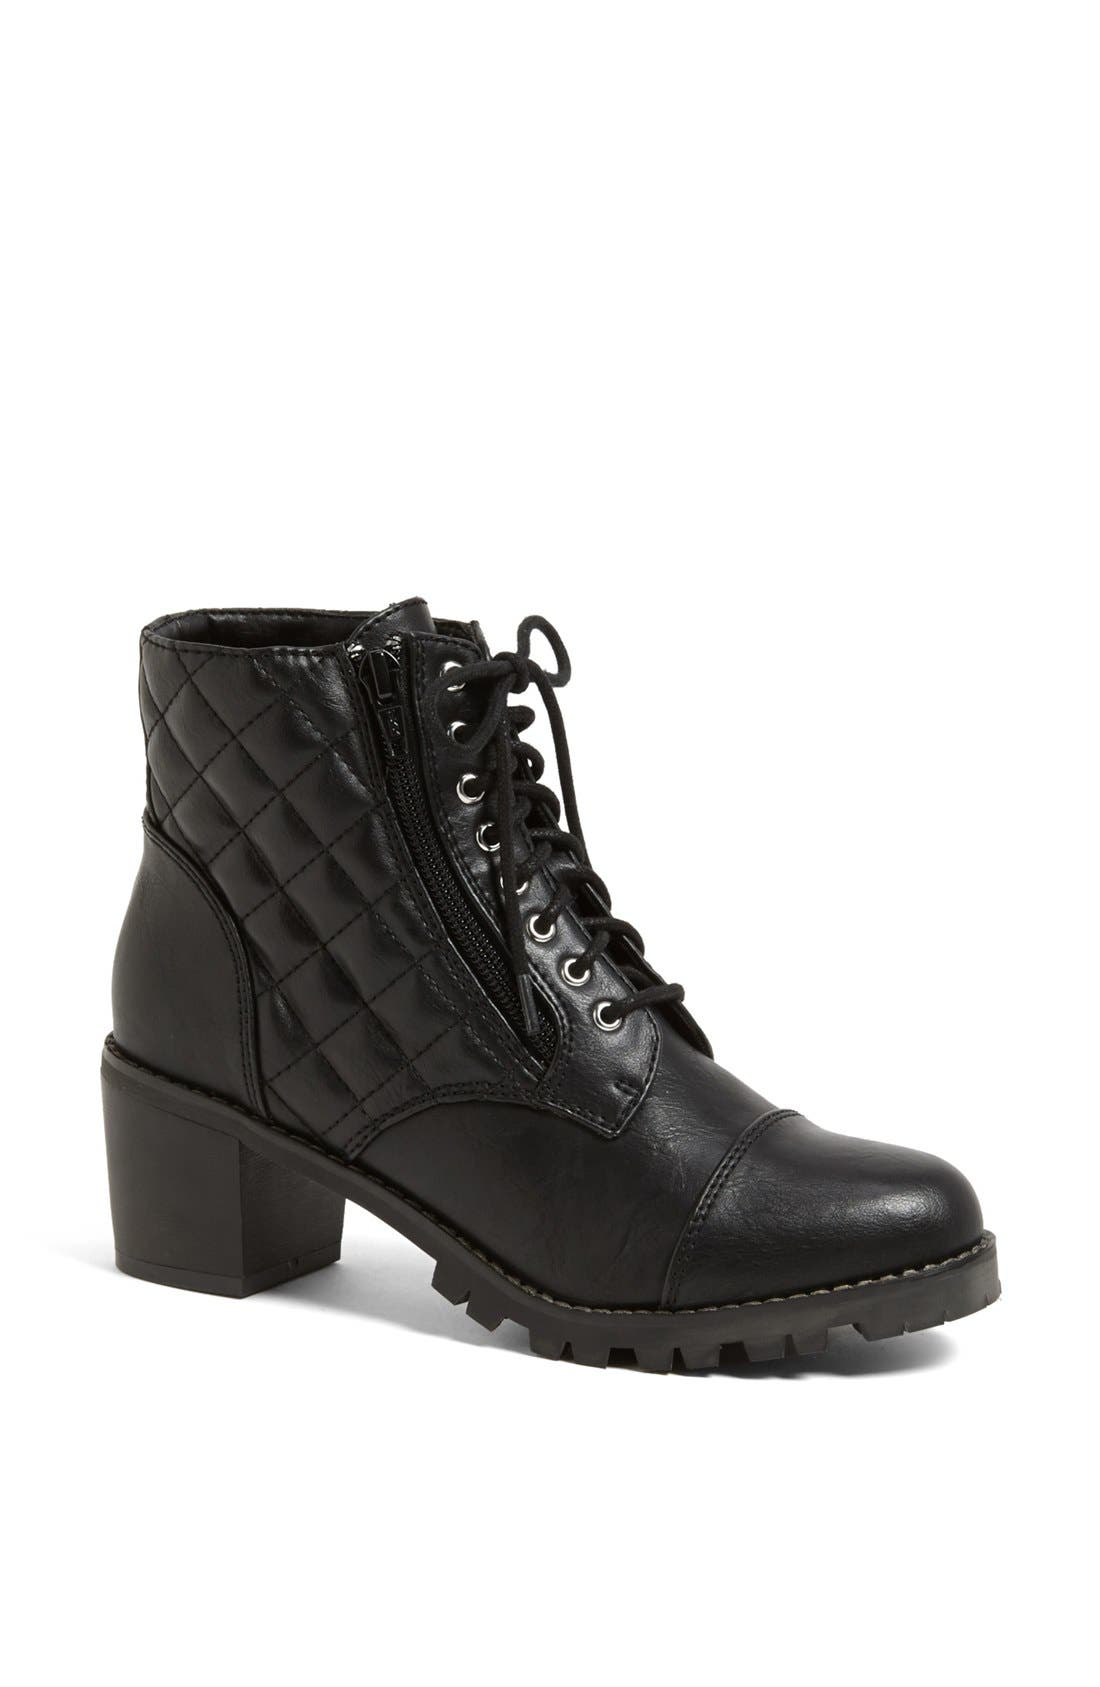 Alternate Image 1 Selected - Tildon 'Uptown' Quilted Boot